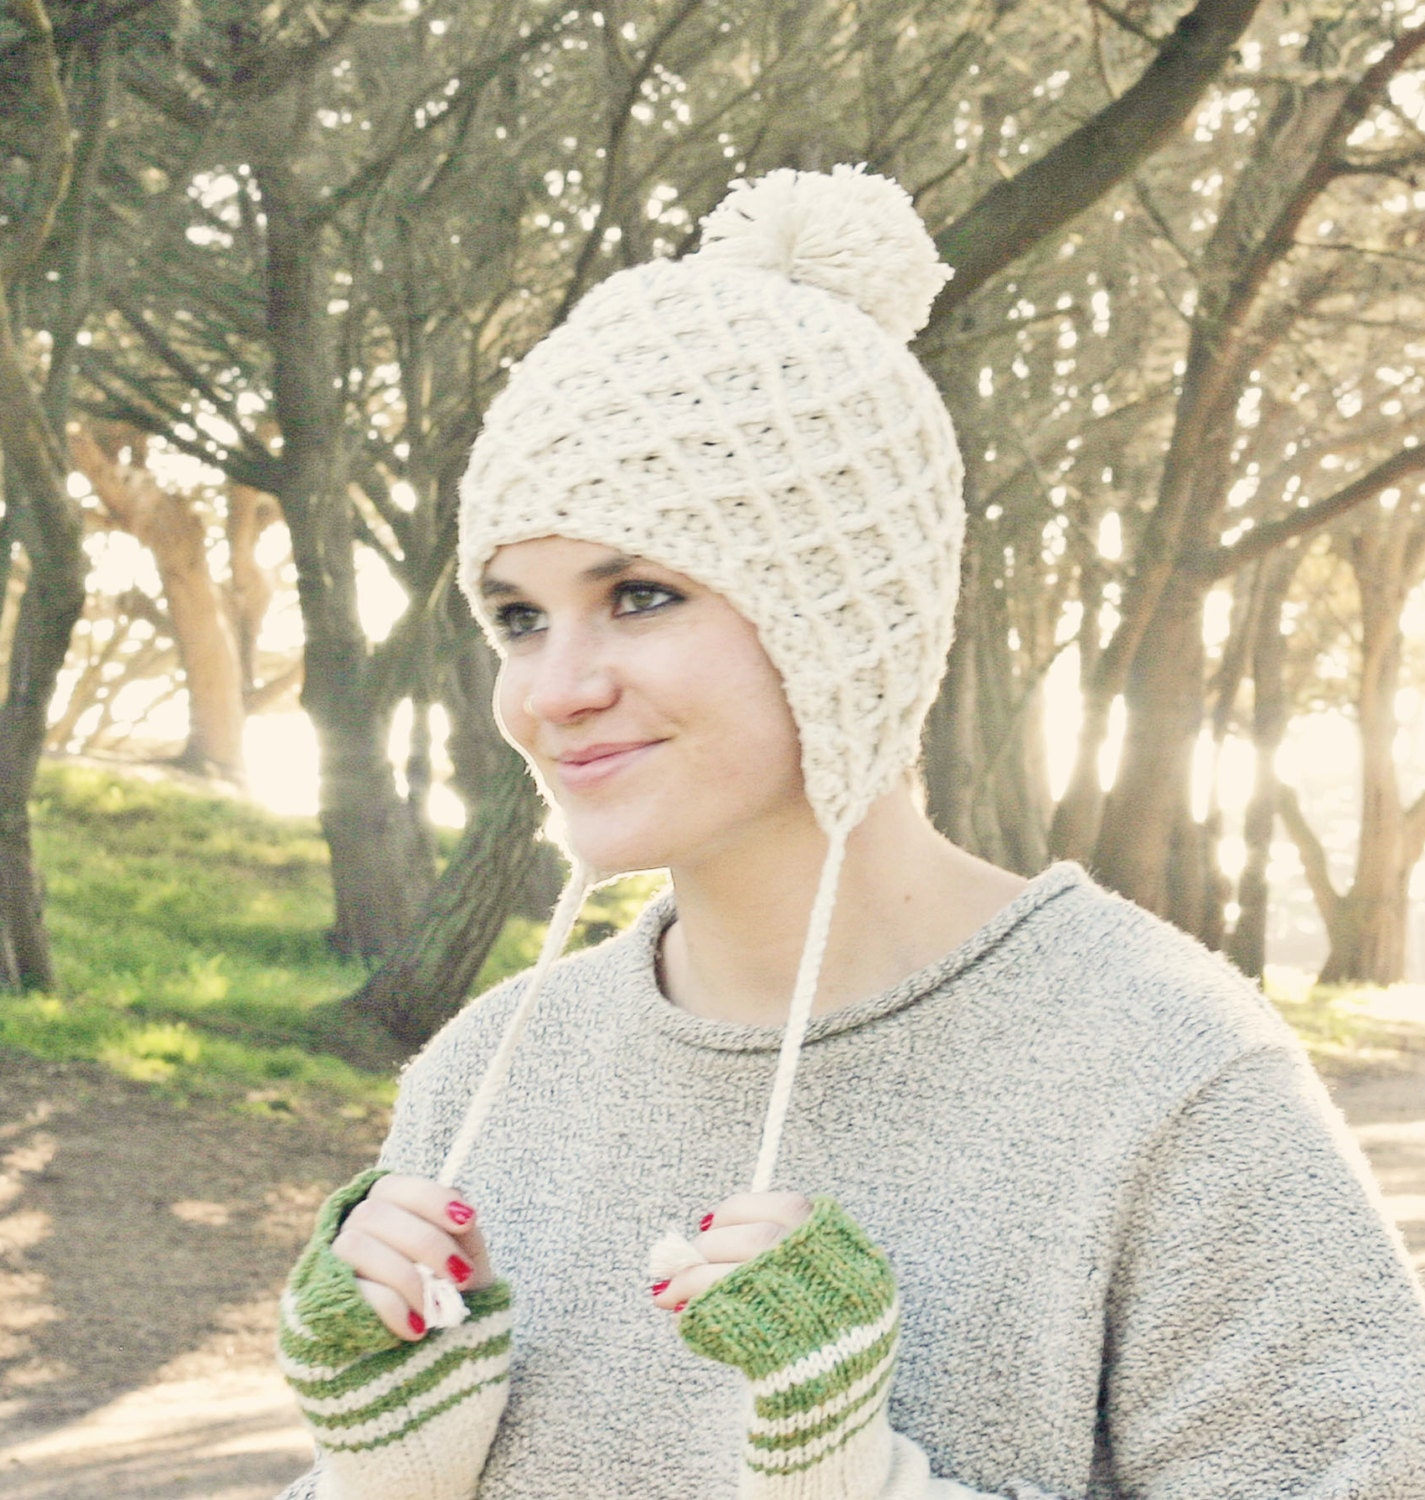 Crochet Ear Flap Hat Pattern Crochet Pom Pom Hat Pattern Hat